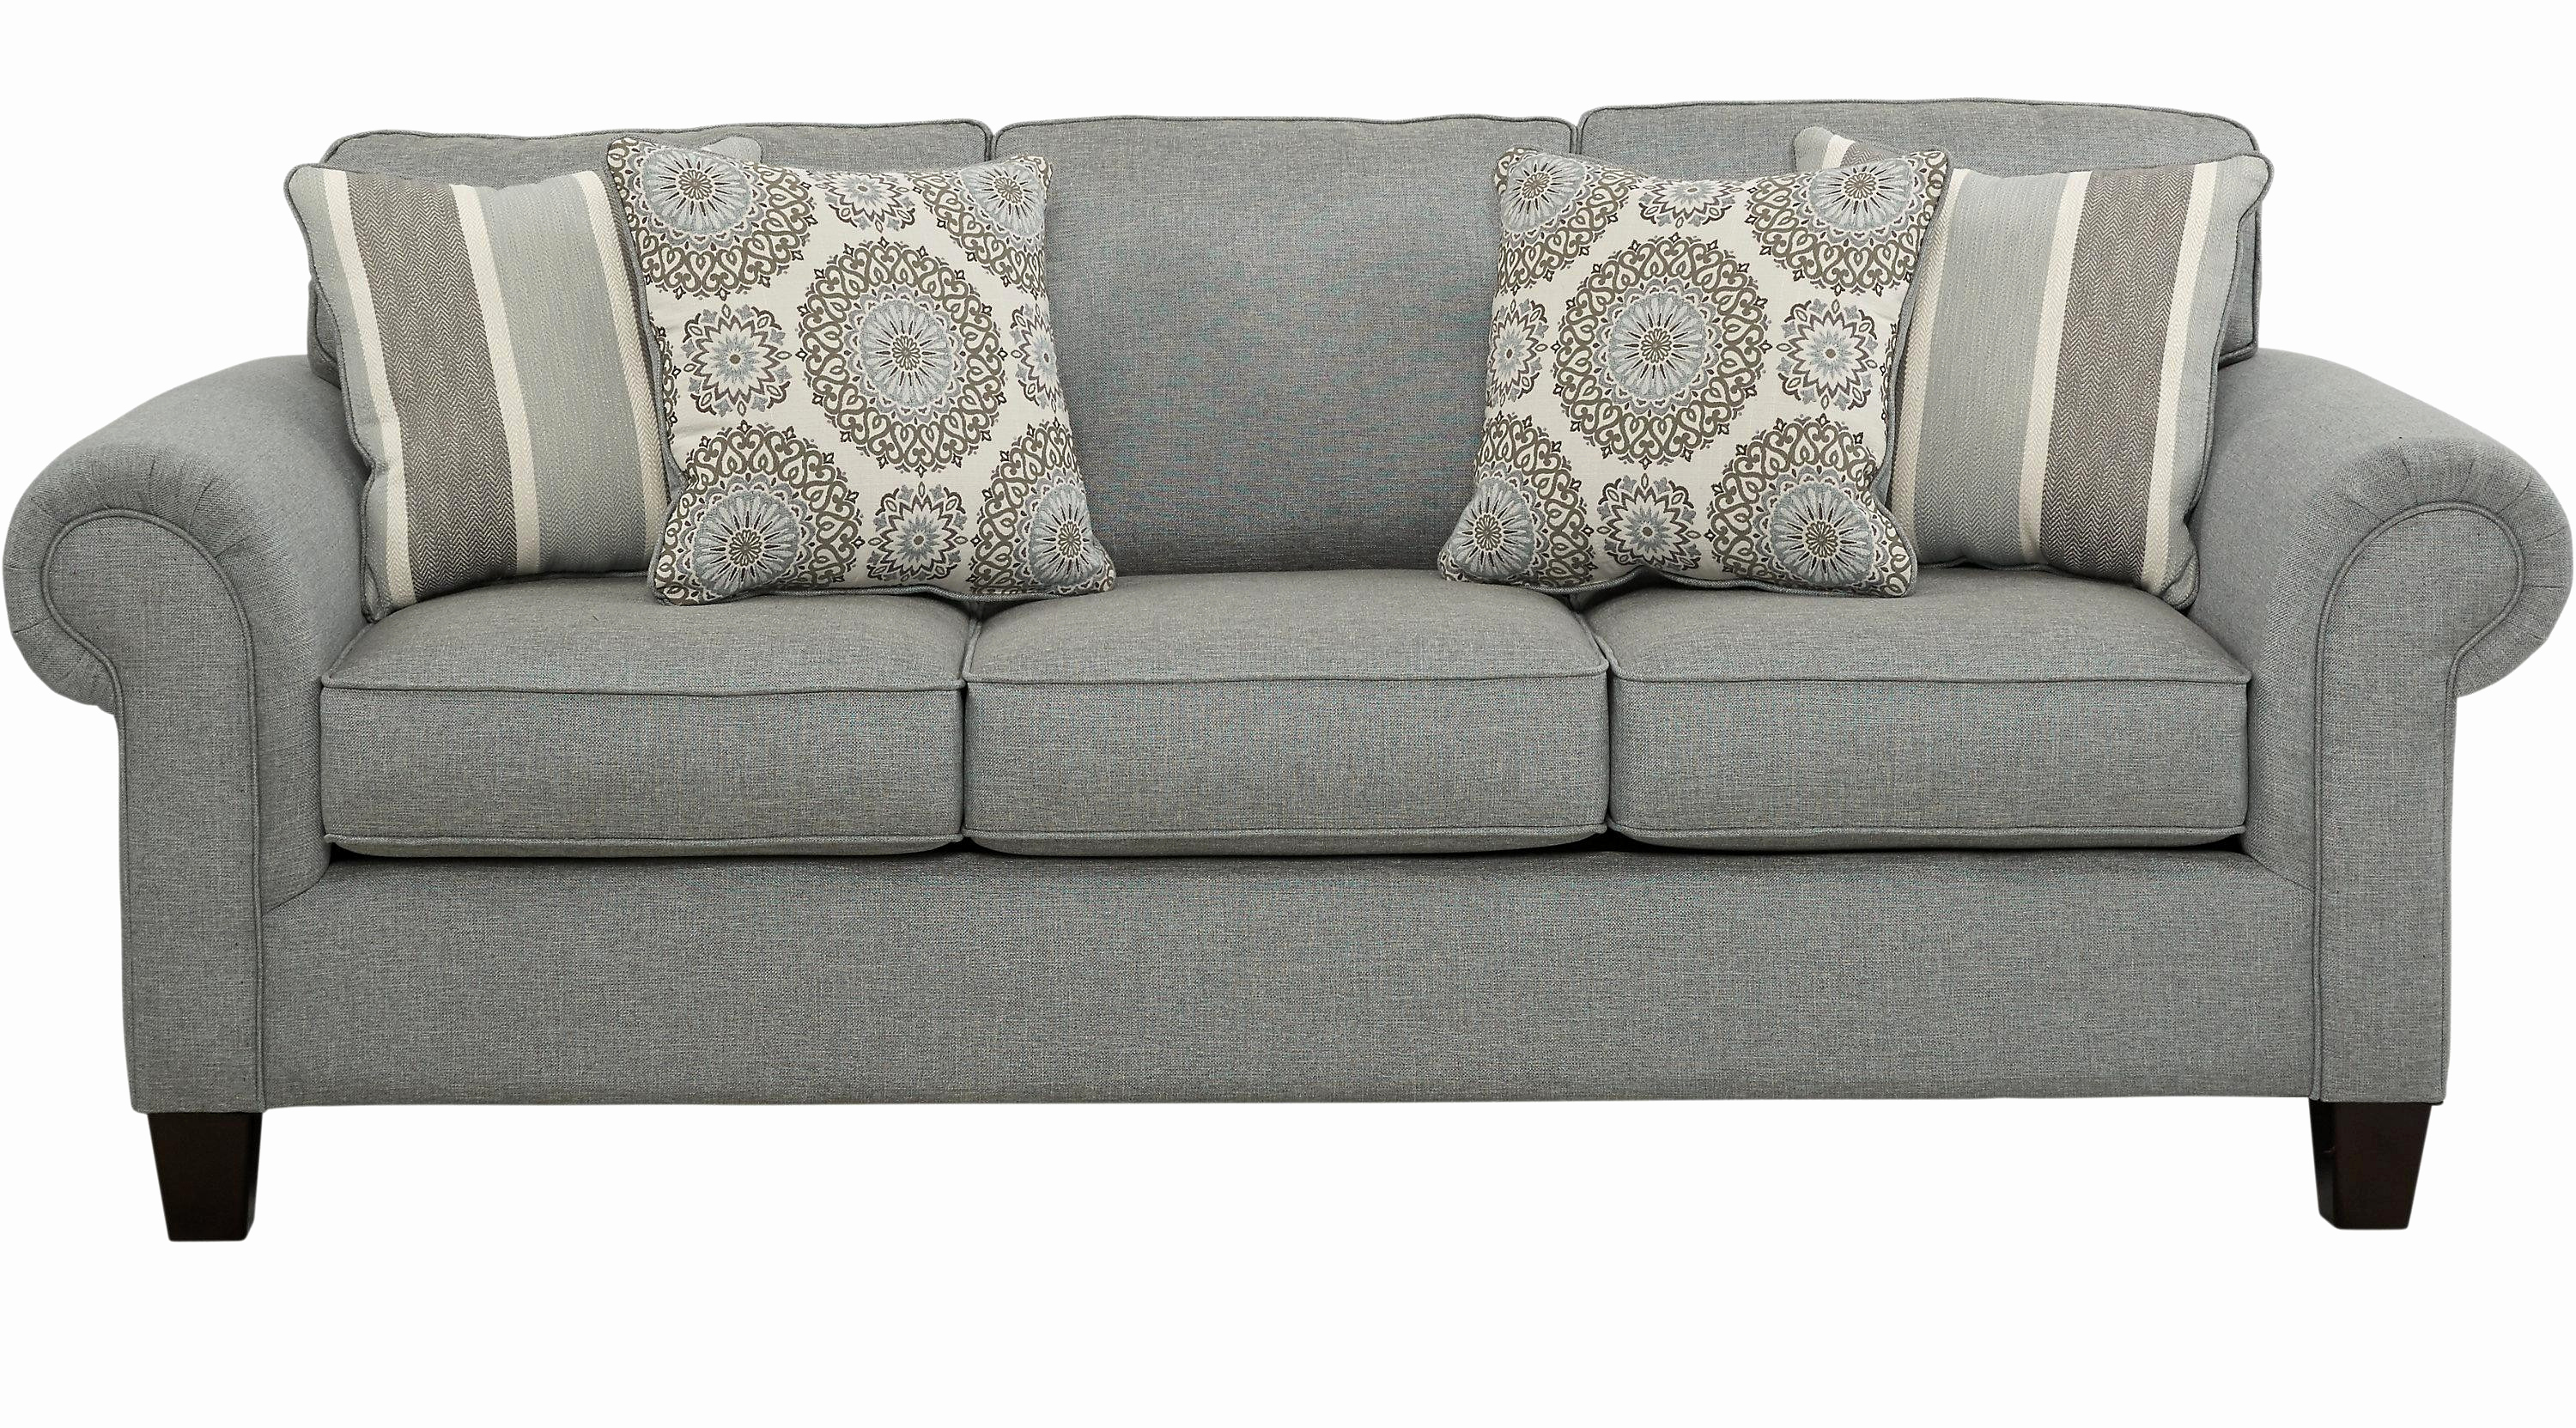 Xxl sofa Kolonialstil Frisch 41 Neu Big sofa Kolonialstil